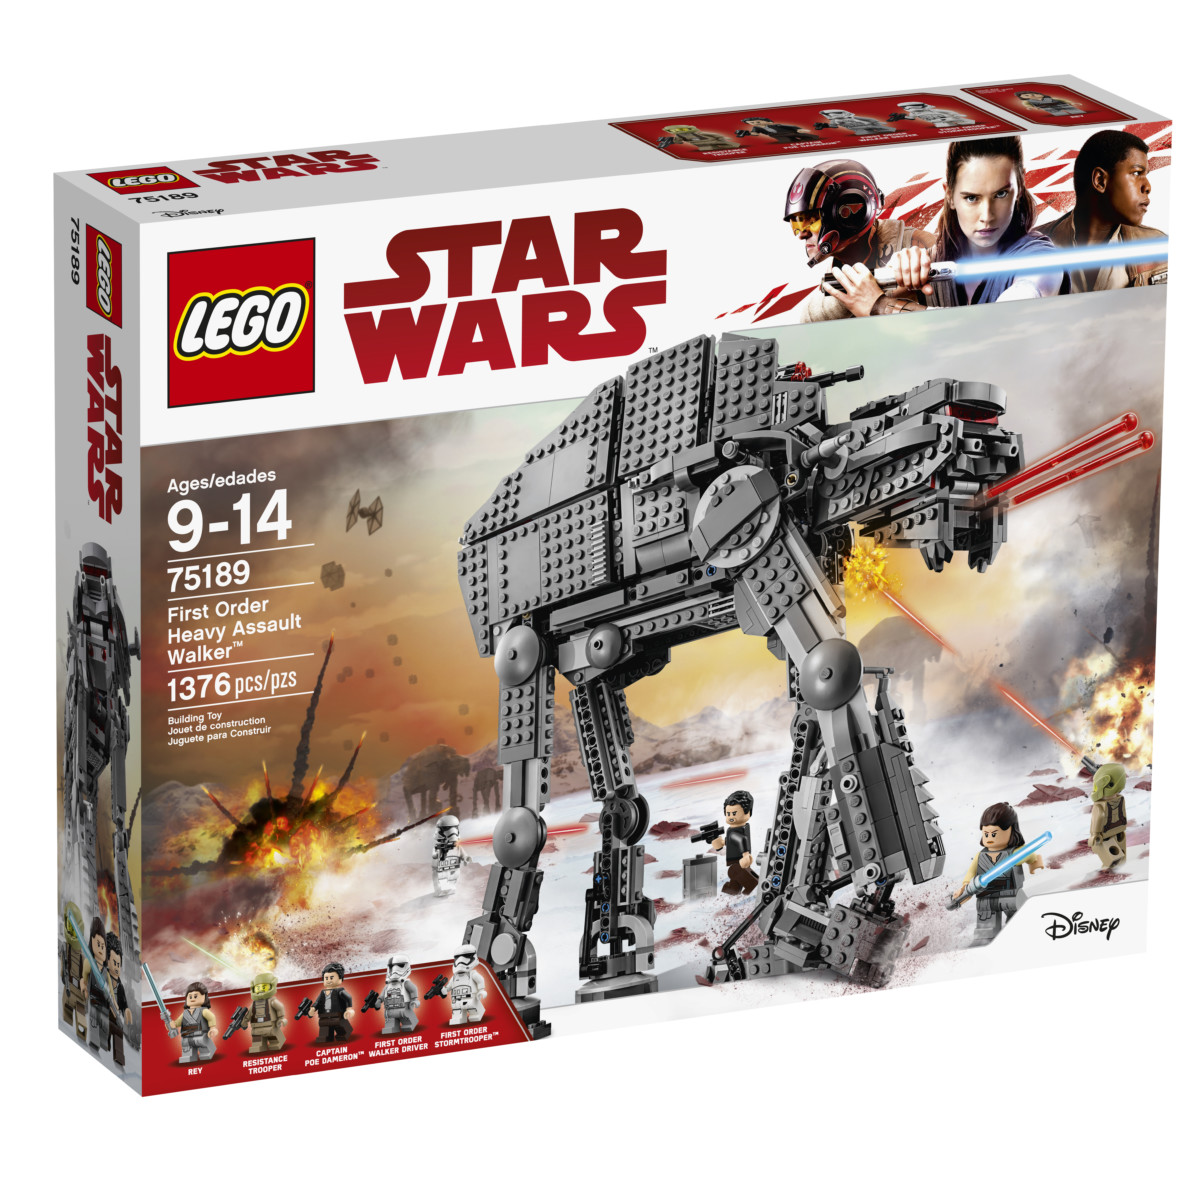 Today's Force Friday II LEGO Releases for Star Wars: The Last Jedi  #ForceFriday 12